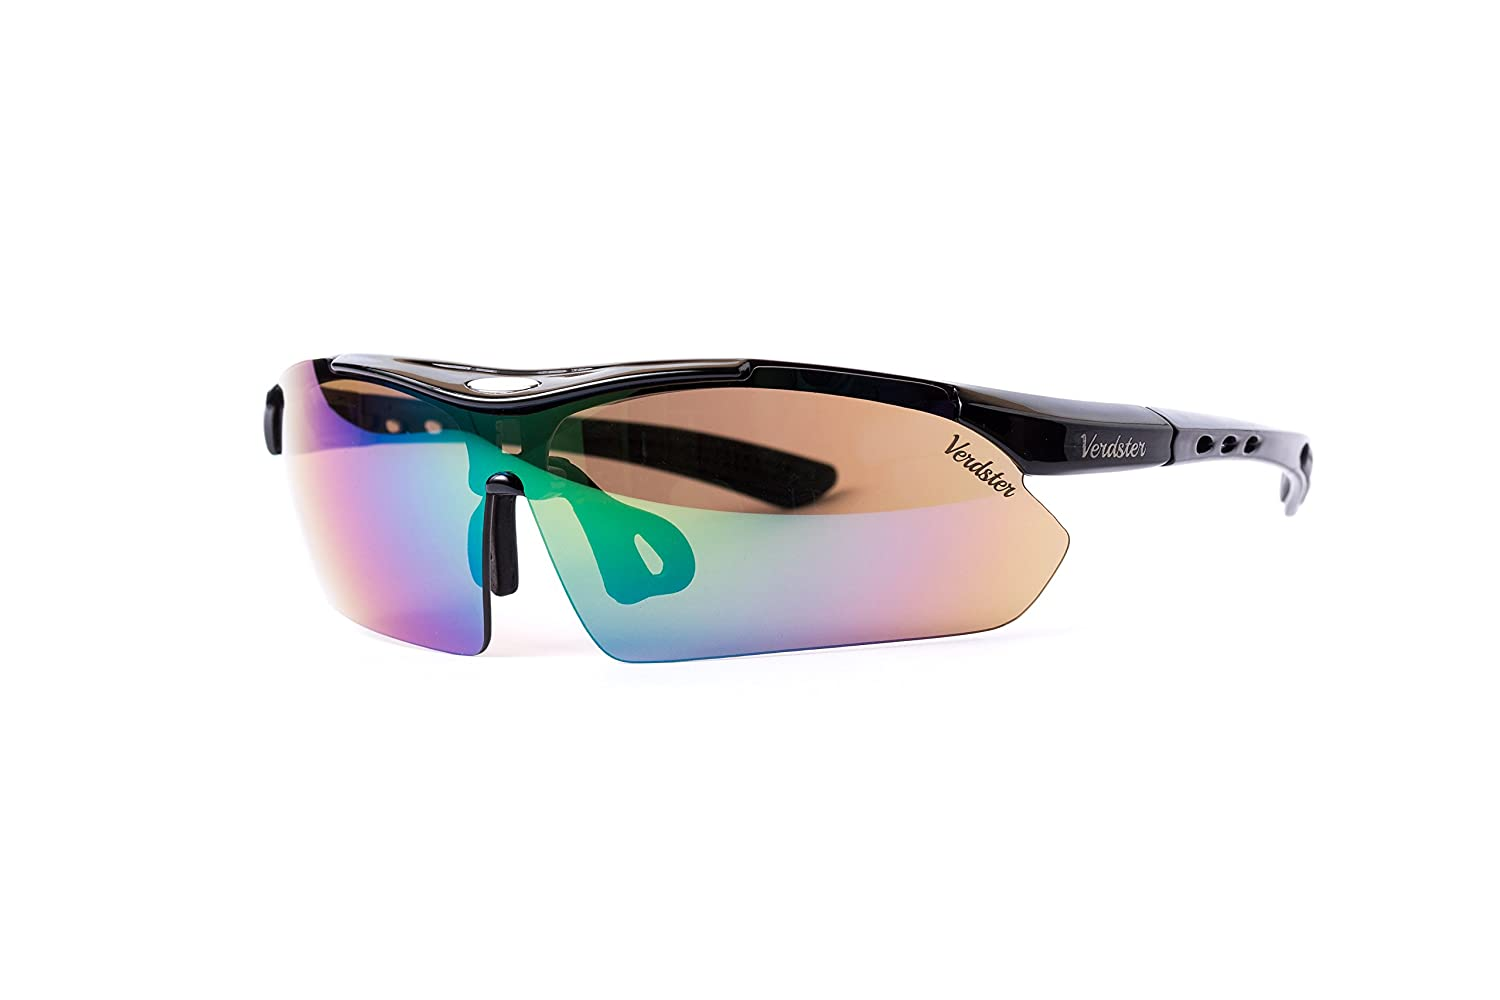 ad5b7bc64d4 Amazon.com  Verdster TourDePro Polarized Cycling Sport Sunglasses For Men  and Women 5 Lenses